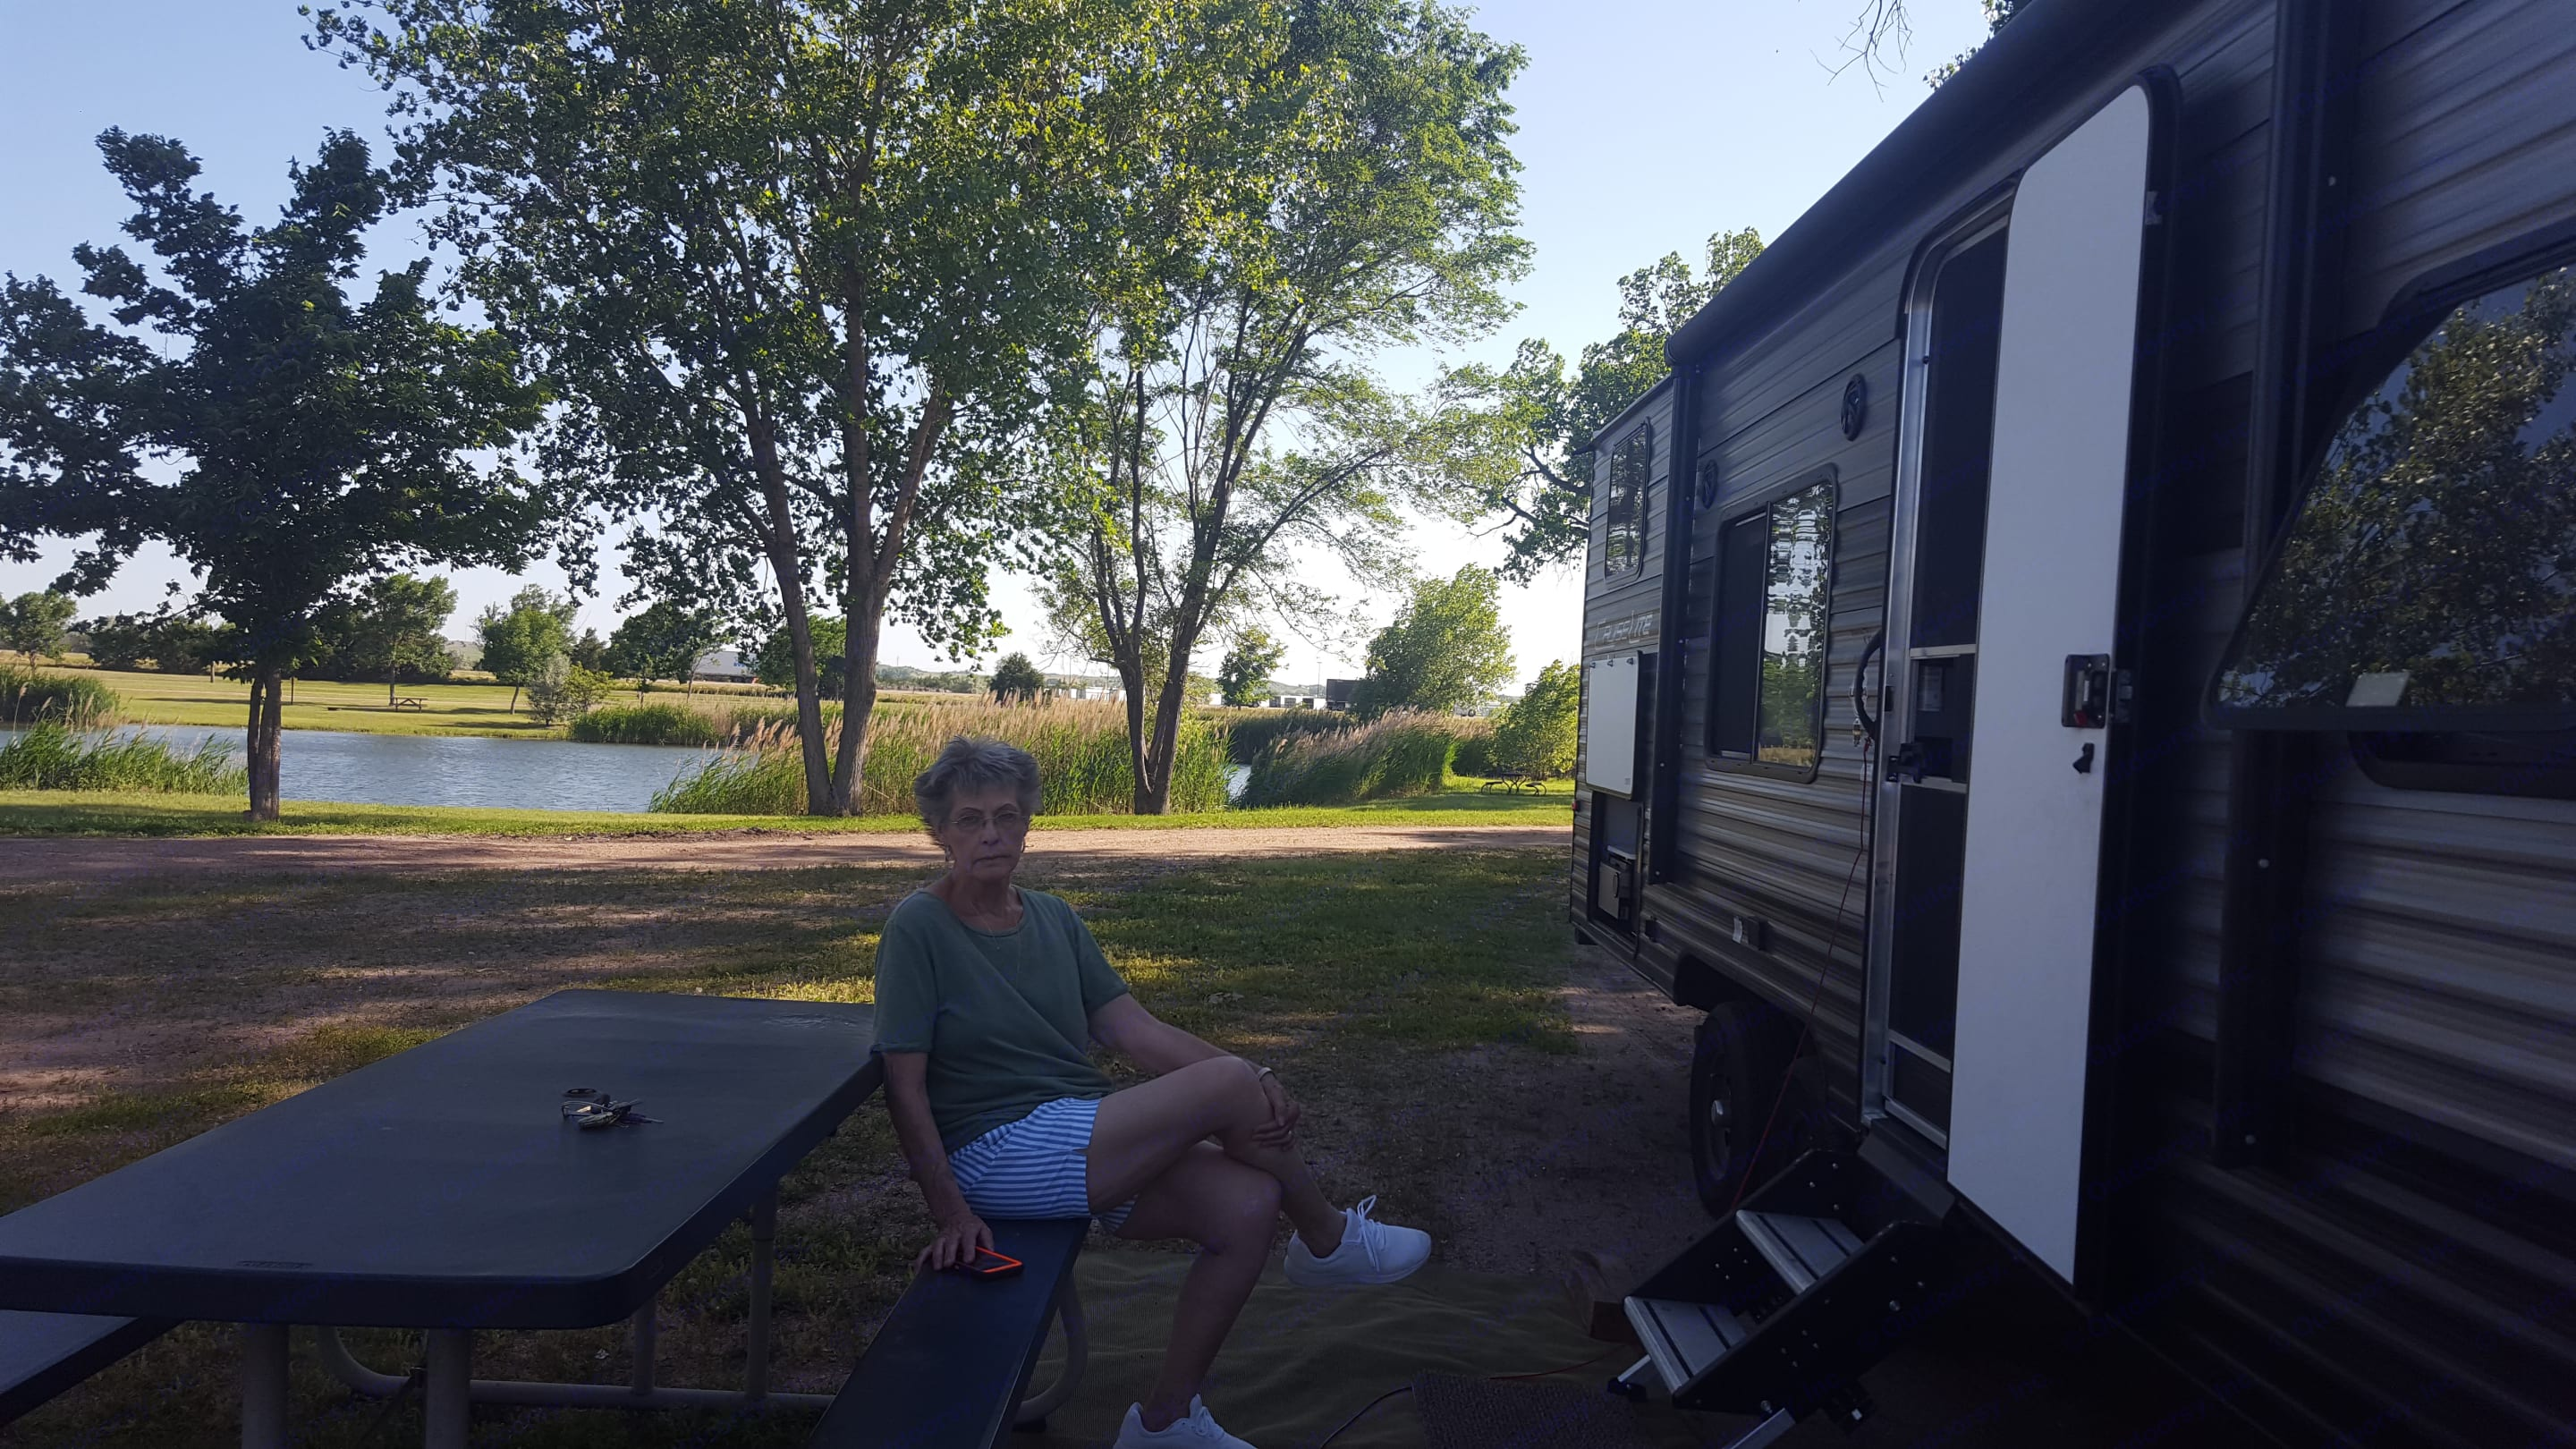 Enjoying a lovely afternoon in North Platte, NE. It was a little windy so we had to roll the awning in.. Forest River Salem Cruise Lite 2019